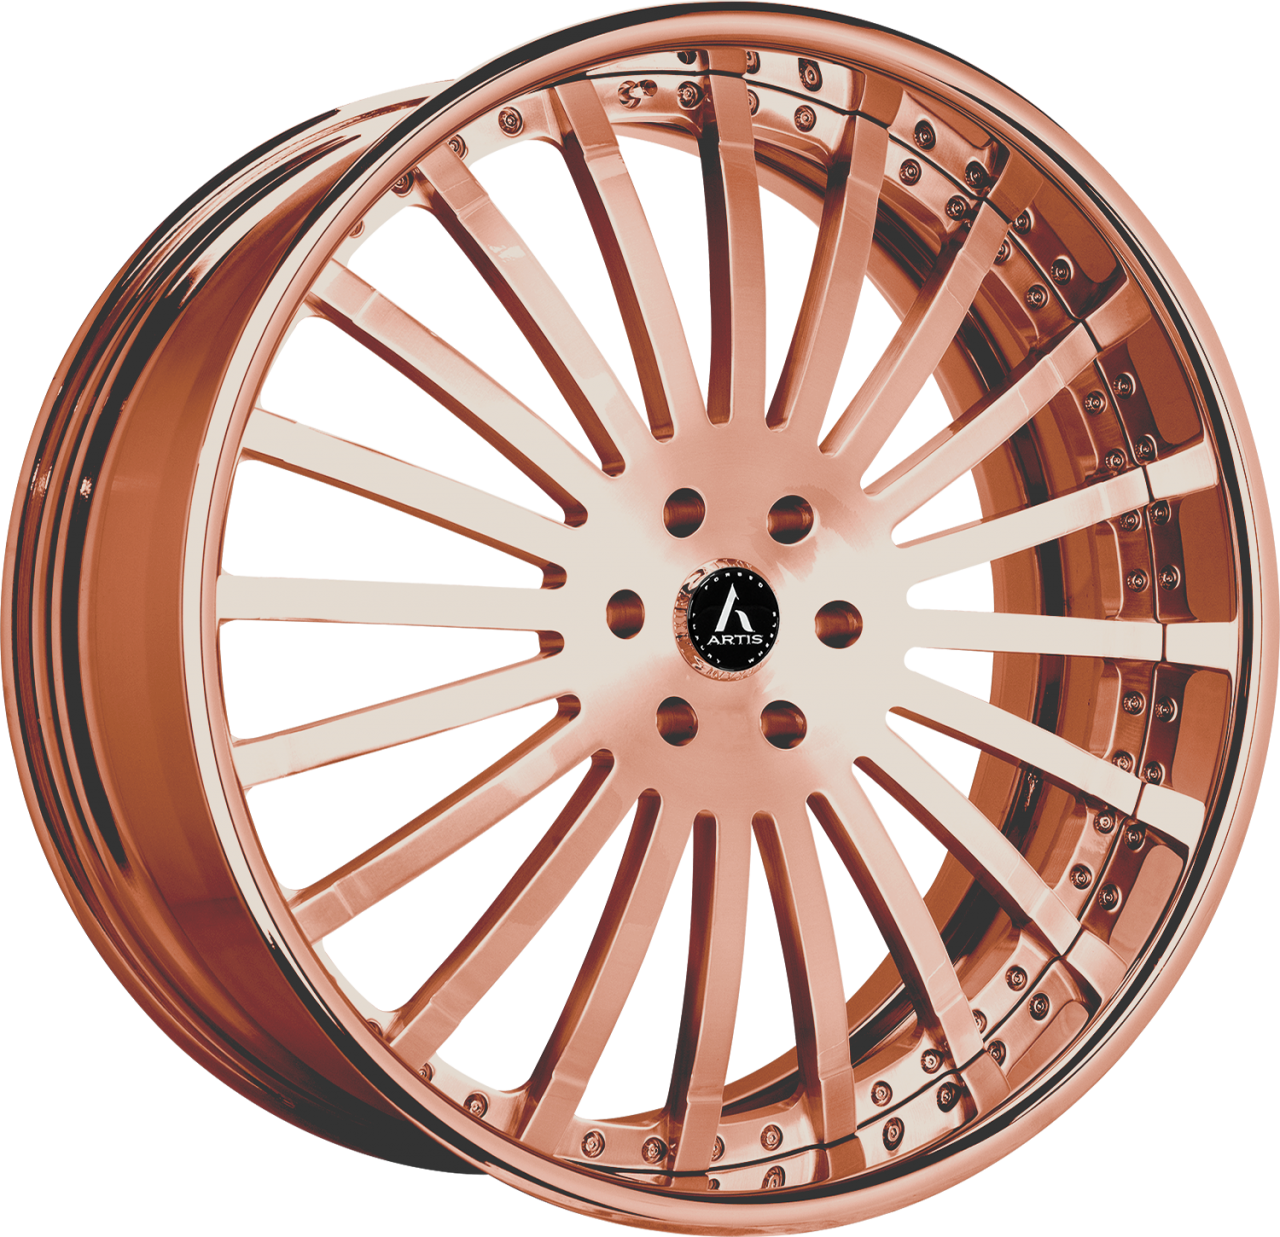 Artis Forged Coronado wheel with Custom Rose Gold finish